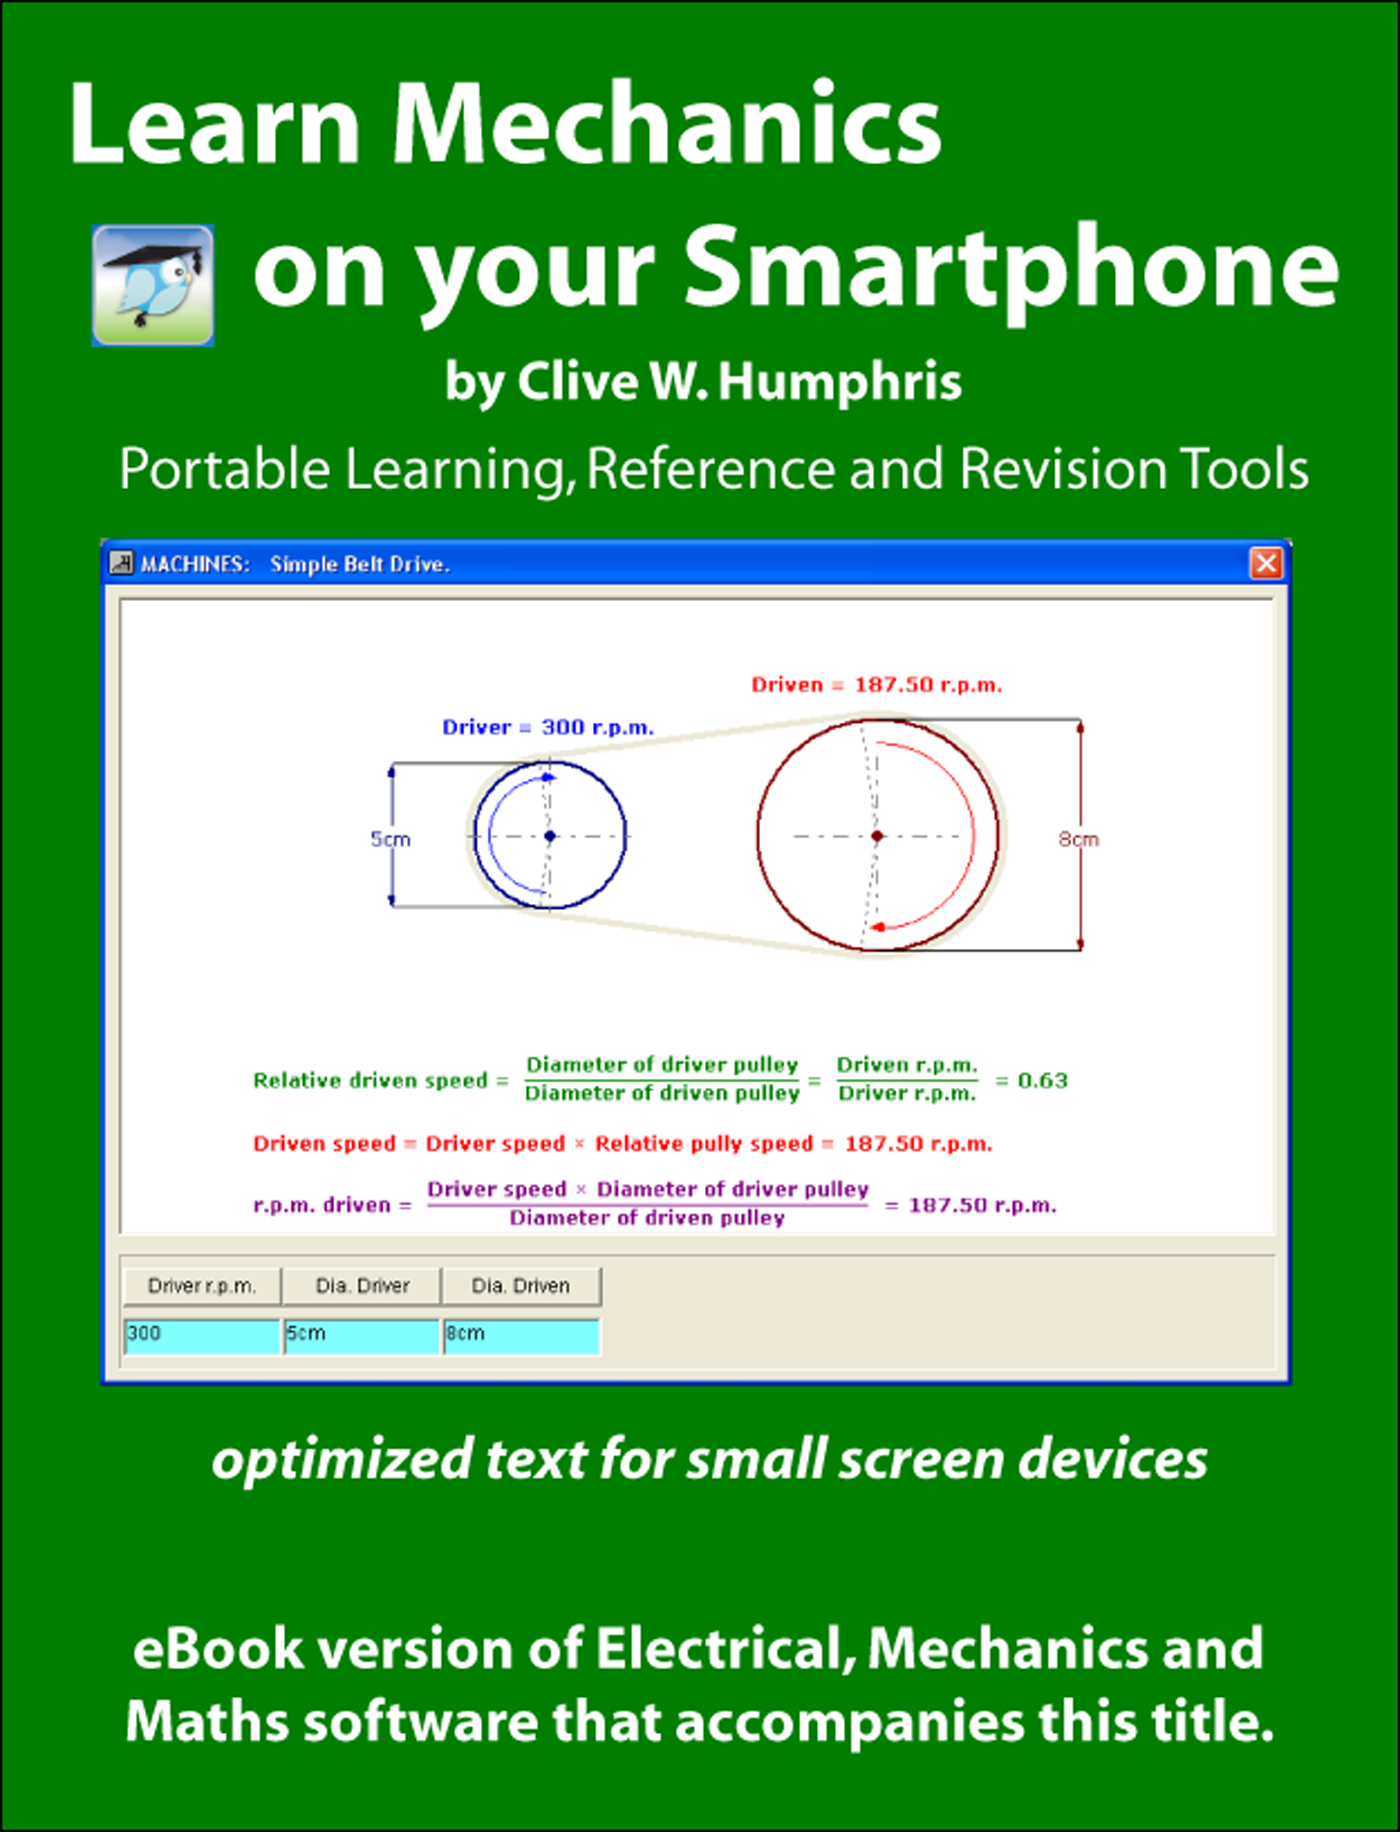 Learn Mechanics on your Smartphone